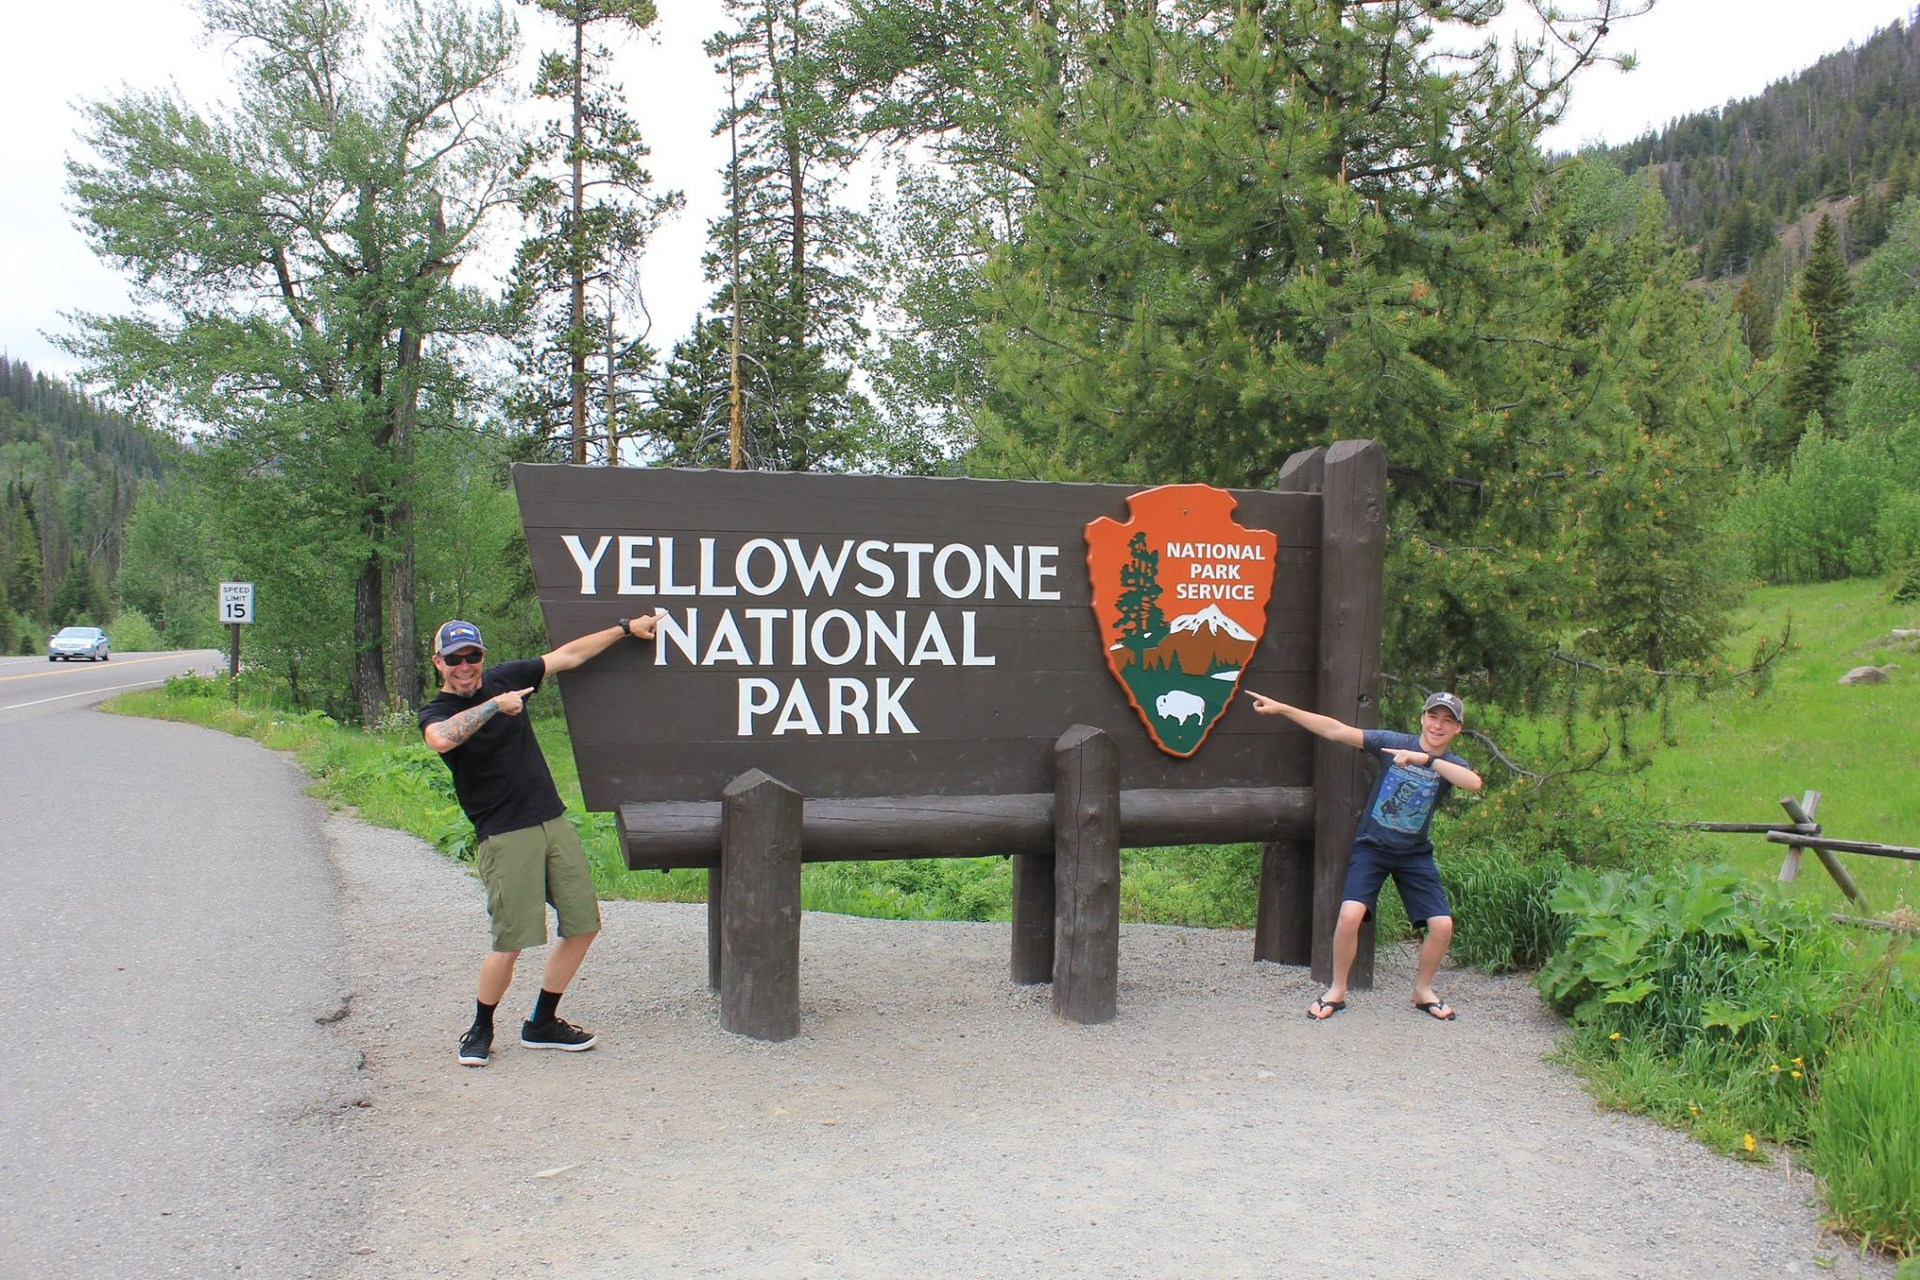 Me and my son, Jacob, at Yellowstone National Park